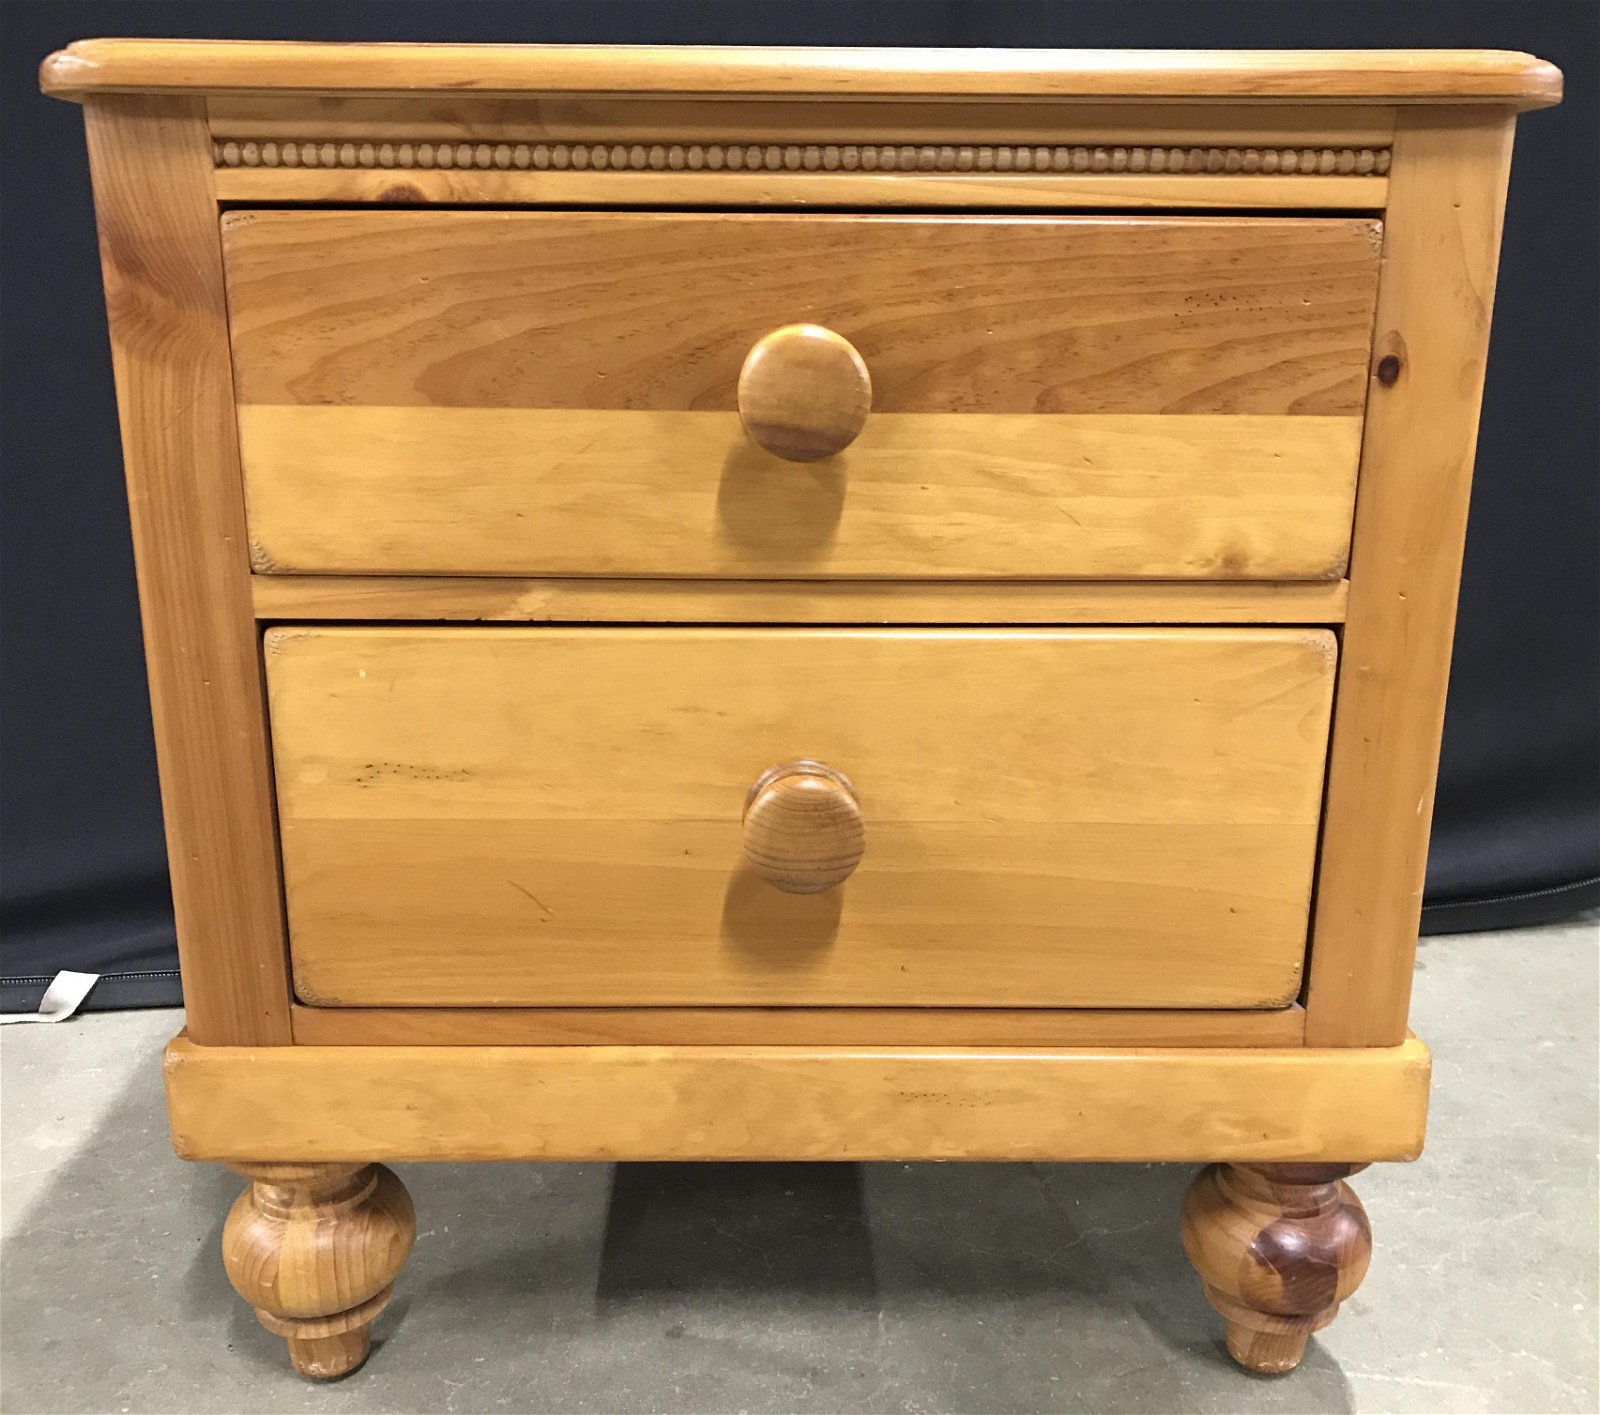 LEXINGTON Carved Wooden Nightstand